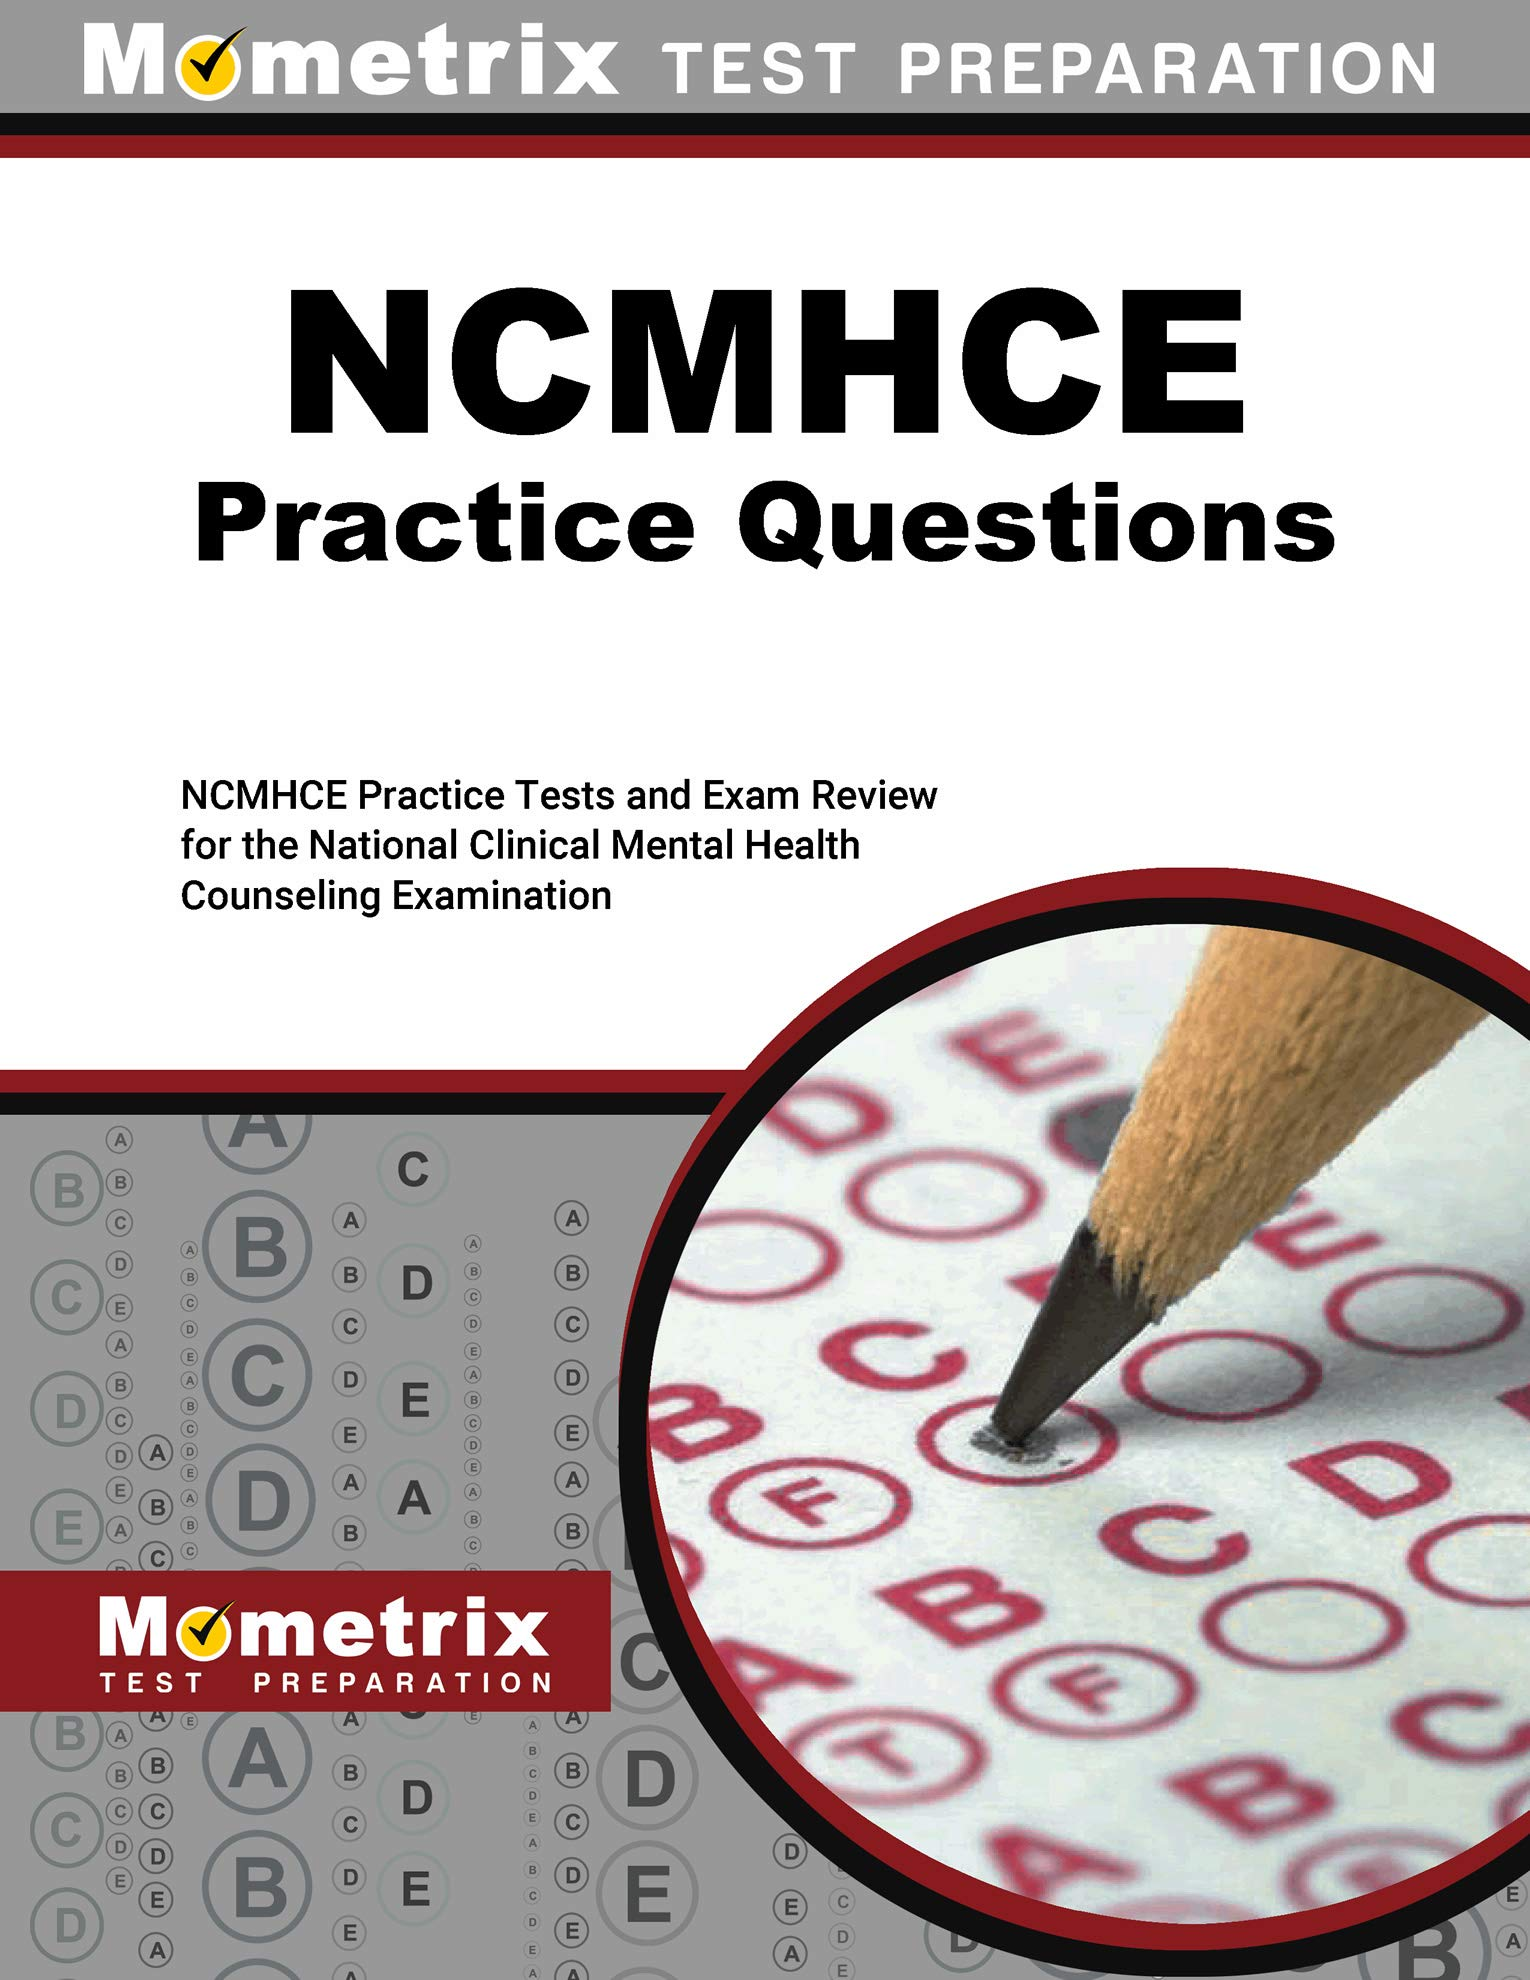 NCMHCE Practice Questions - NCMHCE Practice Tests and Exam Review for the National Clinical Mental Health Counseling Examination [2nd Edition]